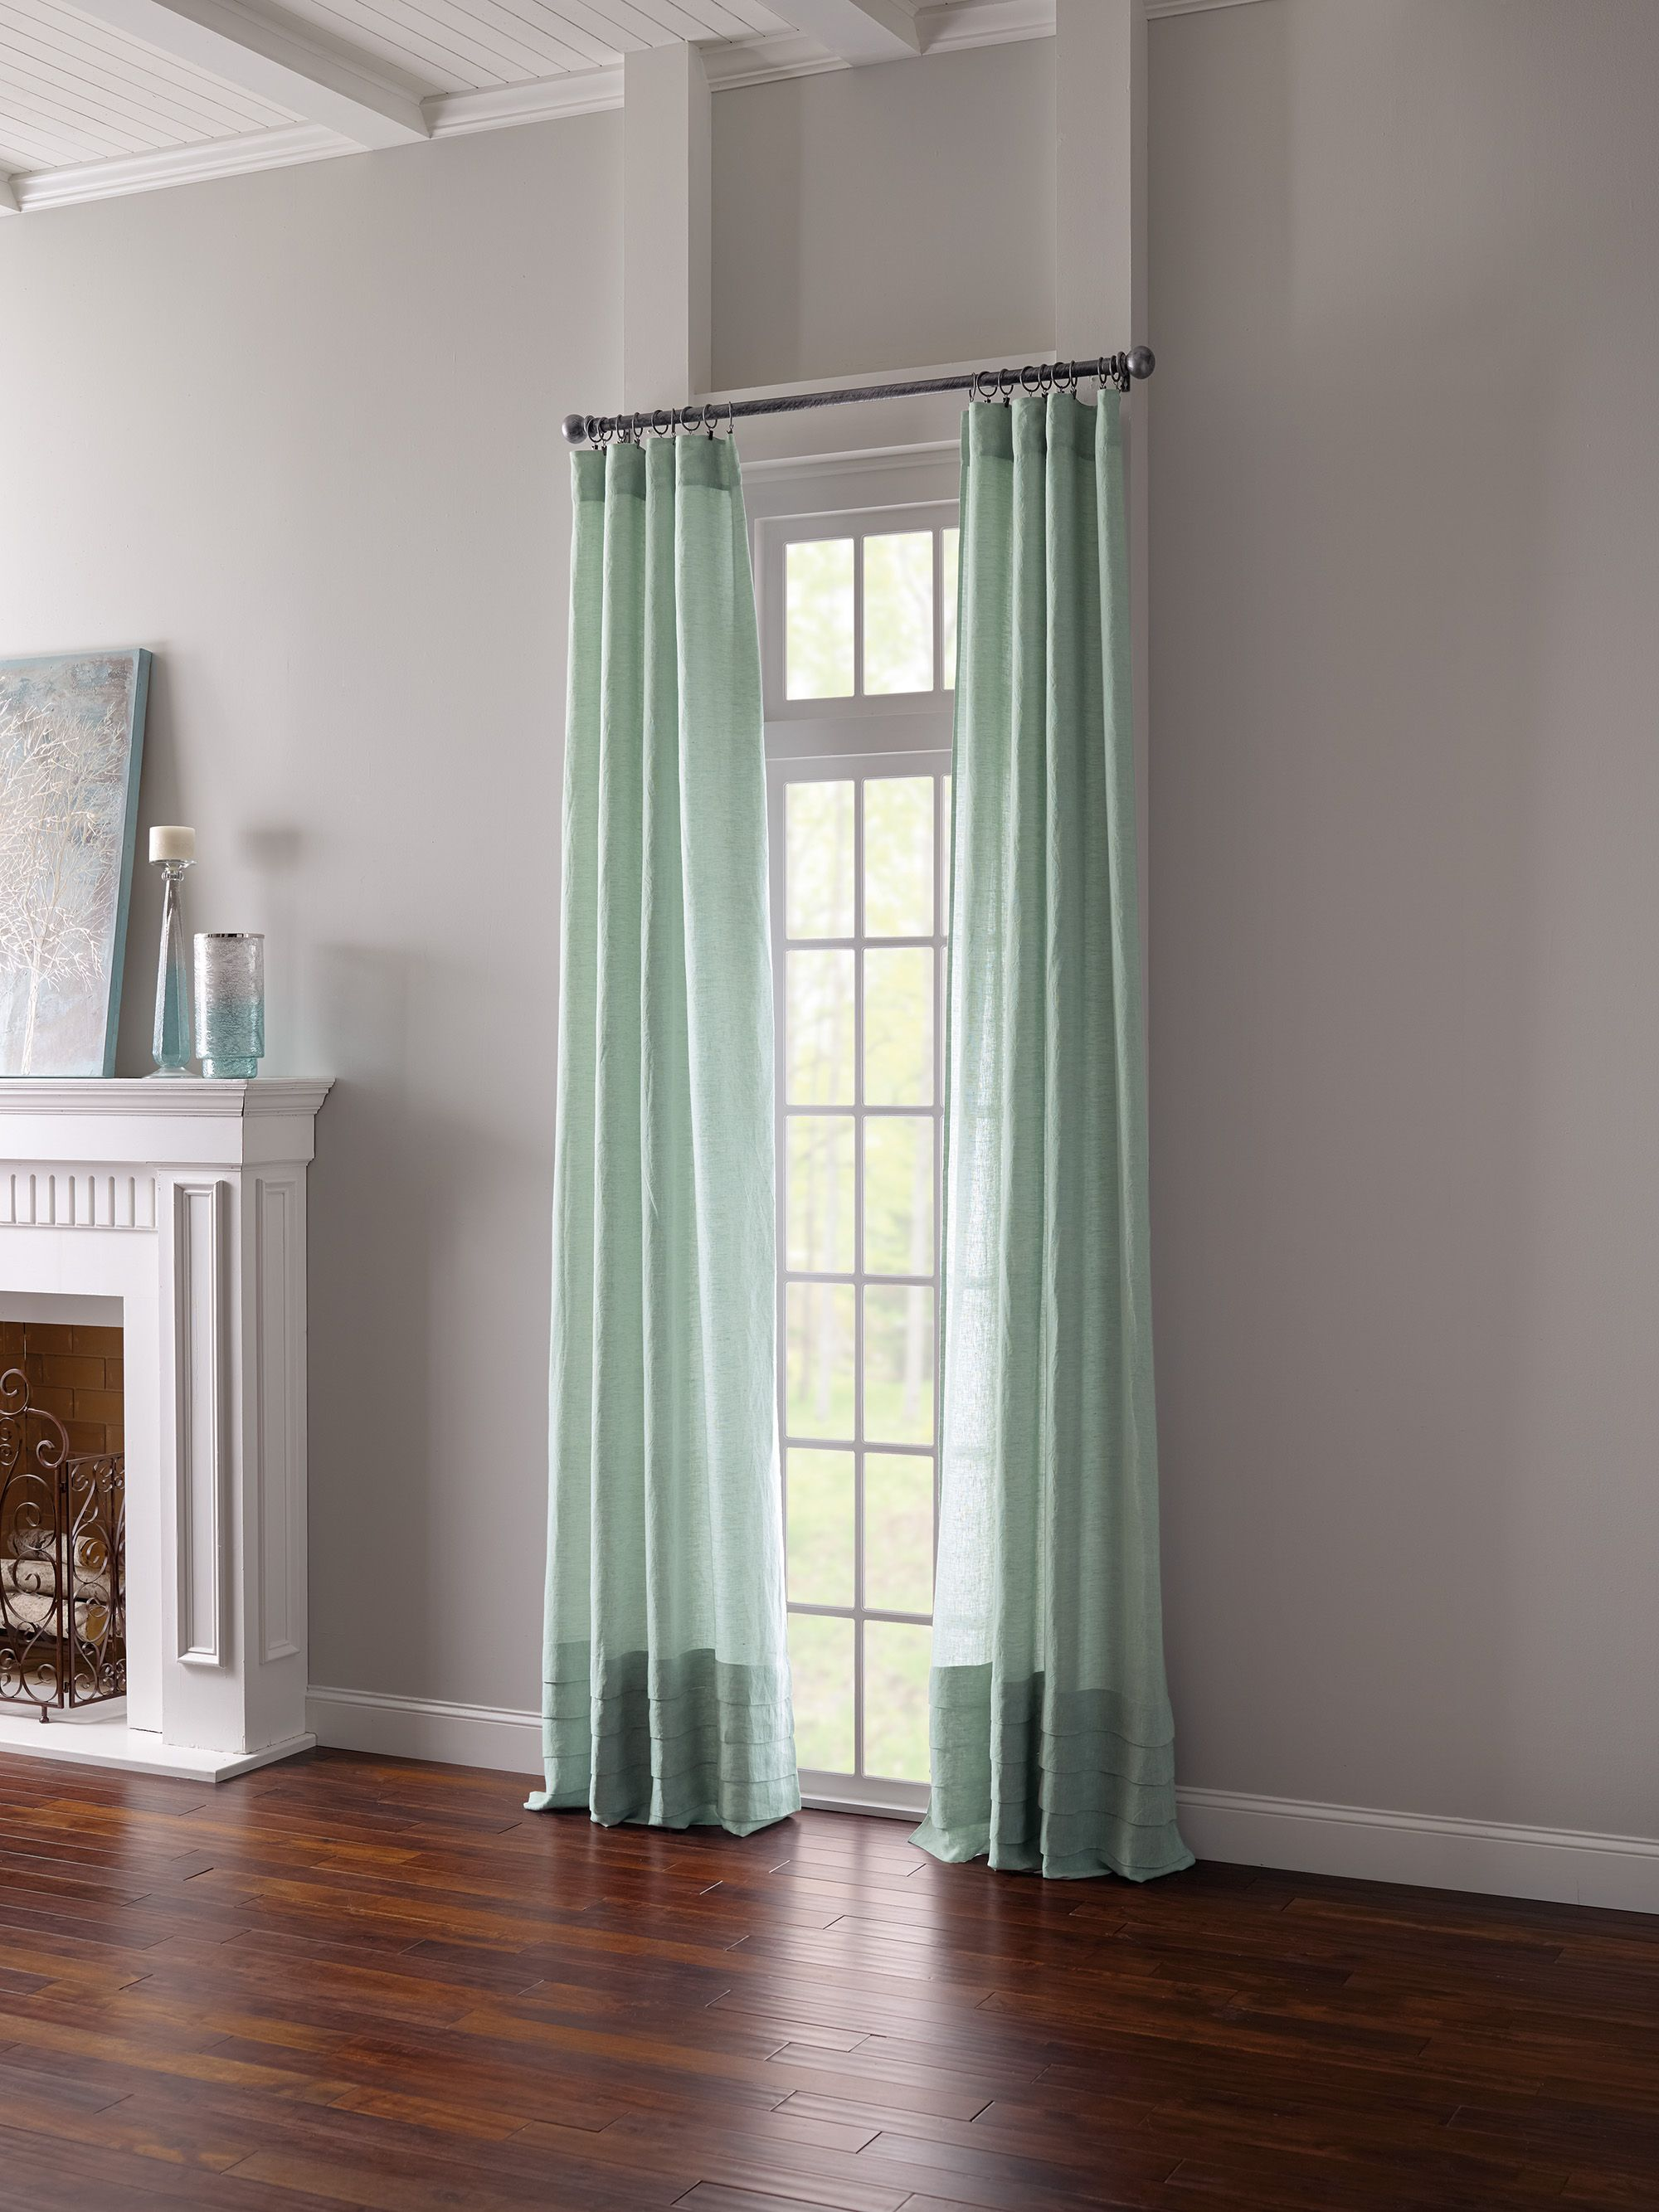 size julian charles curtainsready images and ready stupendous made online curtain discount shower of ideas luxury curtains designerady buy full designer drapes